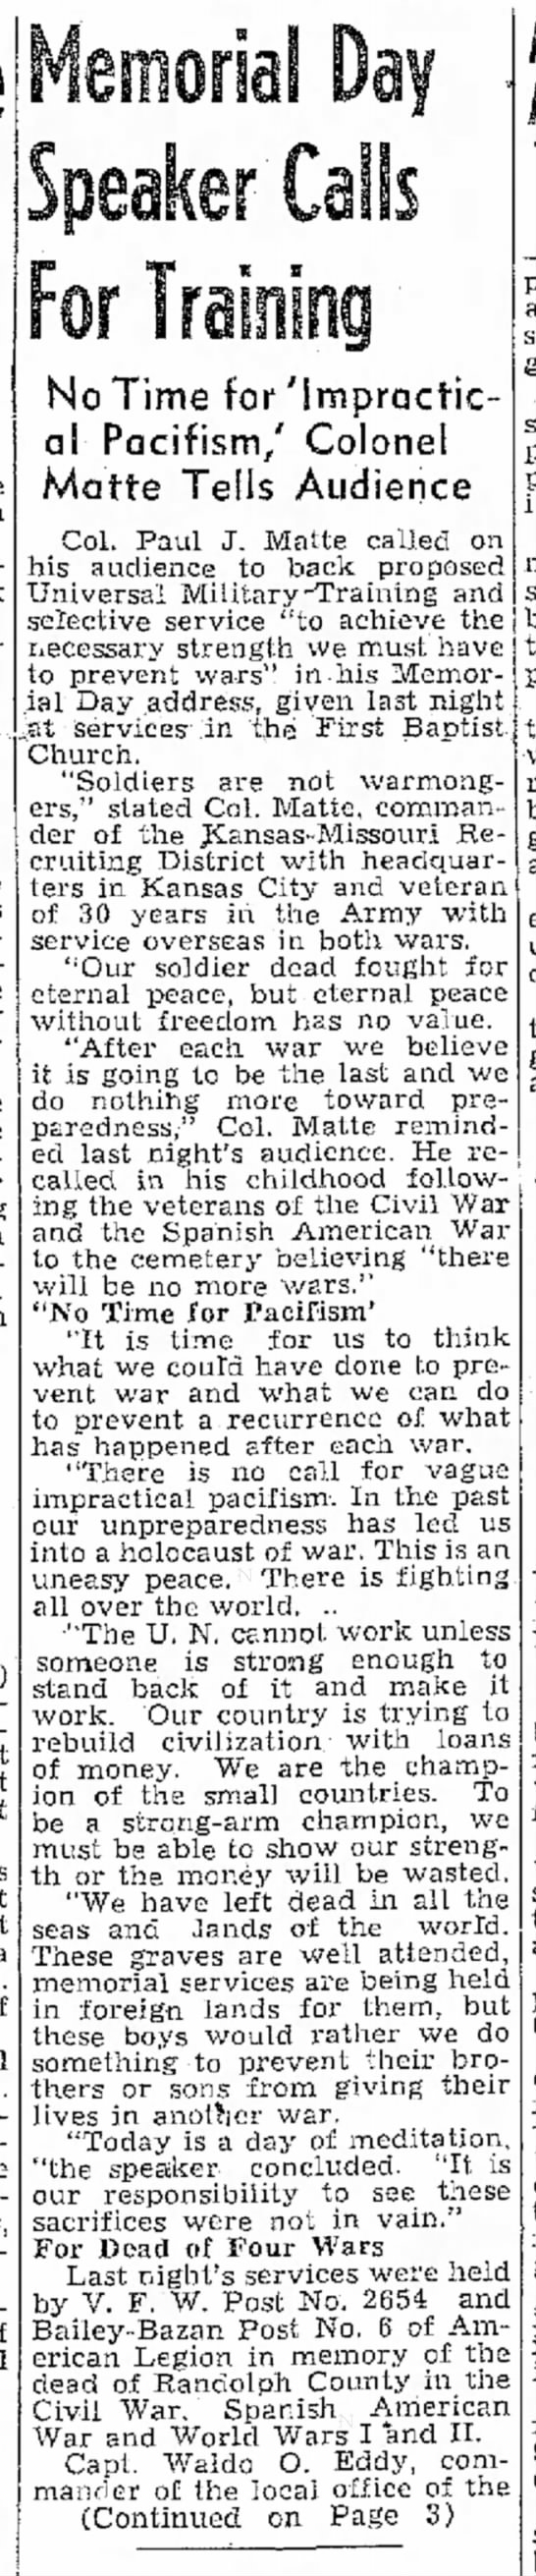 Paul J. Matte Memorial Day Speech - that he Taft- to seek for armed of (/P)...